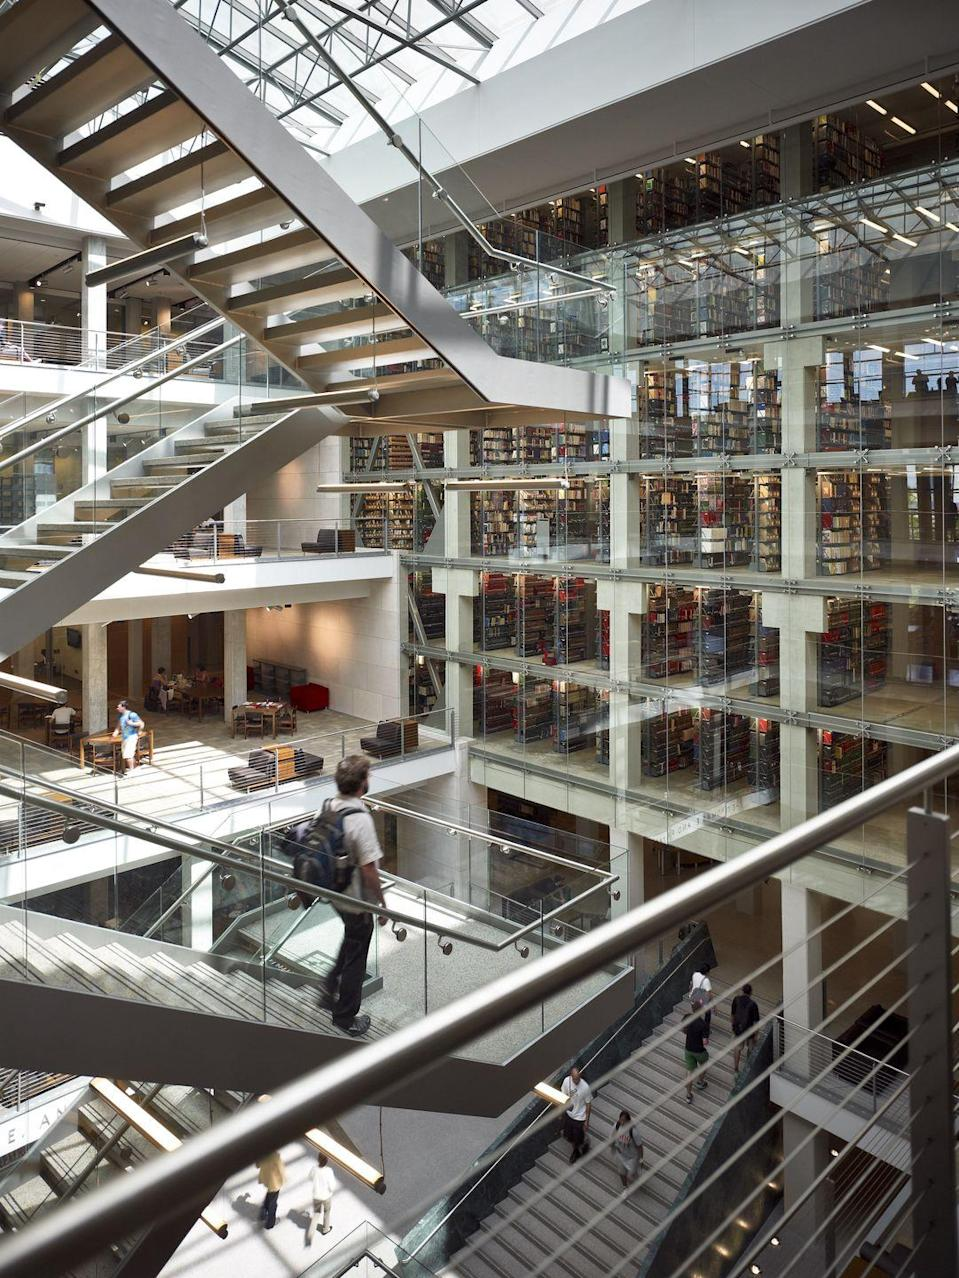 """<p>A three-year, $108.7 million renovation completed in 2009 brought <a href=""""https://library.osu.edu/about/locations/thompson-library"""" rel=""""nofollow noopener"""" target=""""_blank"""" data-ylk=""""slk:William Oxley Thompson Memorial Library"""" class=""""link rapid-noclick-resp"""">William Oxley Thompson Memorial Library</a> into the modern era. Transparency is key in its new look, complete with glass walls and a staircase that almost appears to be floating in the center of the building. <br></p>"""